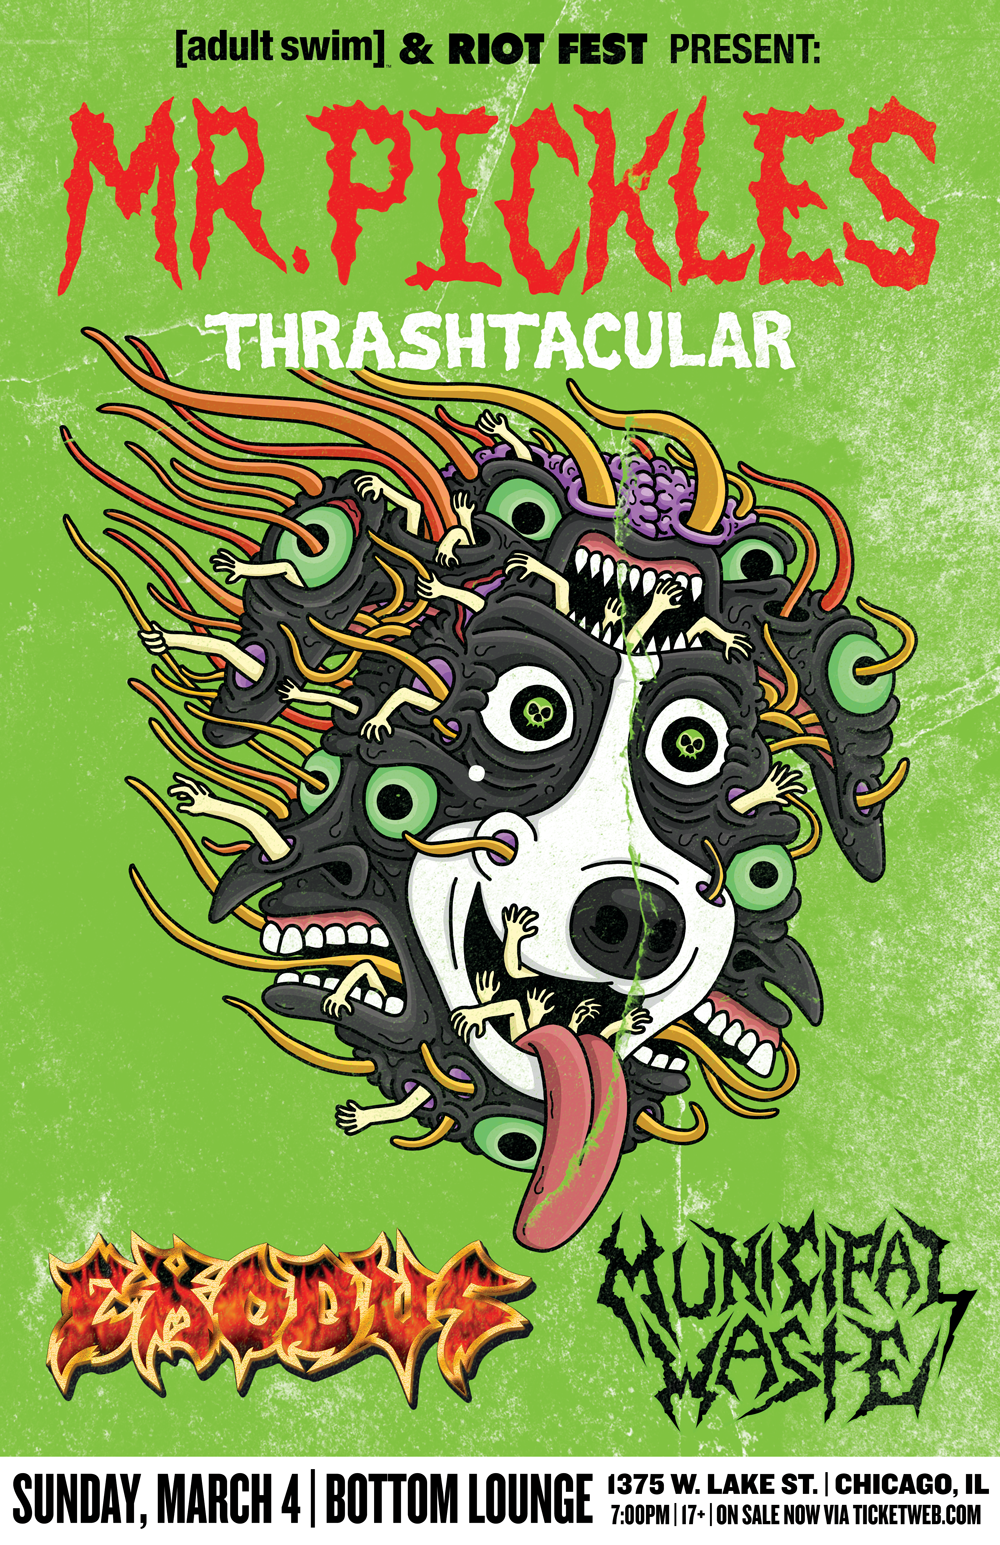 Riot Fest Presents: MR. PICKLES THRASH-TACULAR FEATURING EXODUS AND MUNICIPAL WASTE